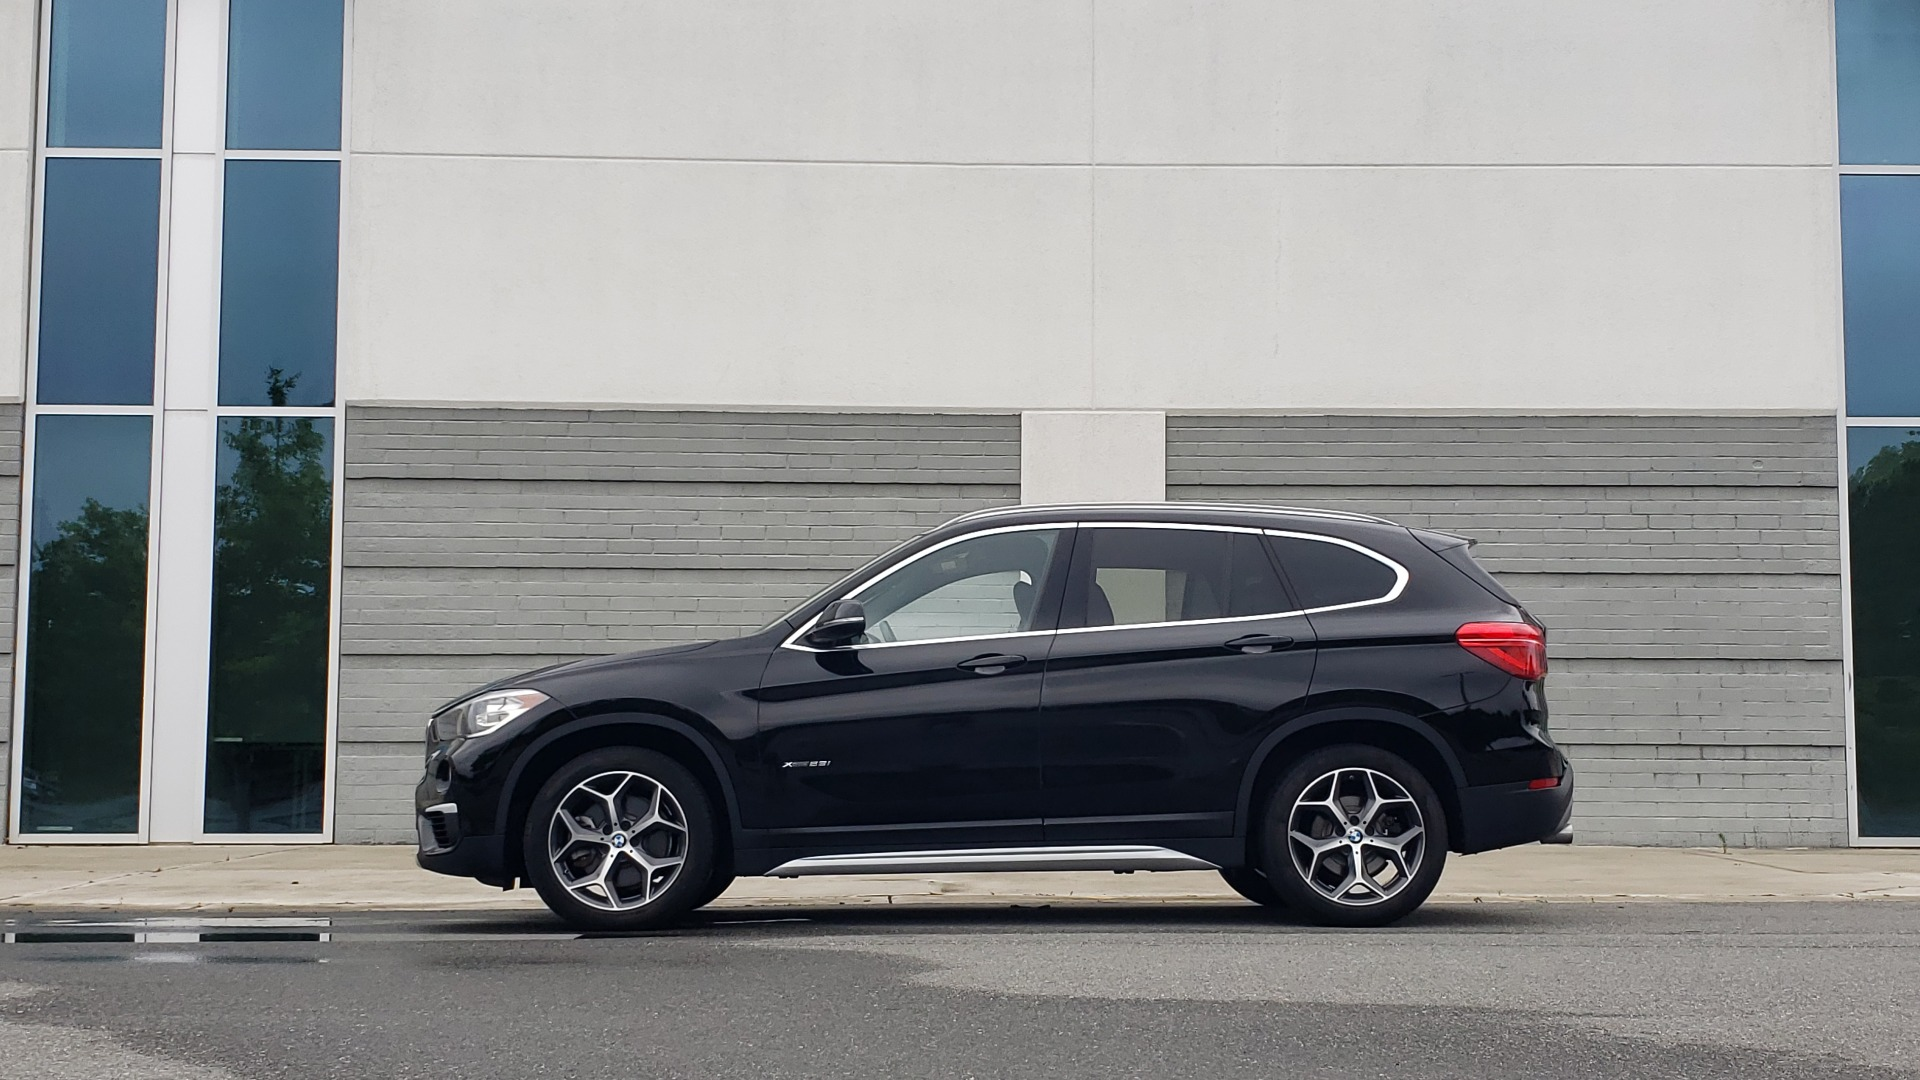 Used 2018 BMW X1 XDRIVE28I / CONV PKG / NAV / HTD STS / PANO-ROOF / REARVIEW for sale $30,995 at Formula Imports in Charlotte NC 28227 5